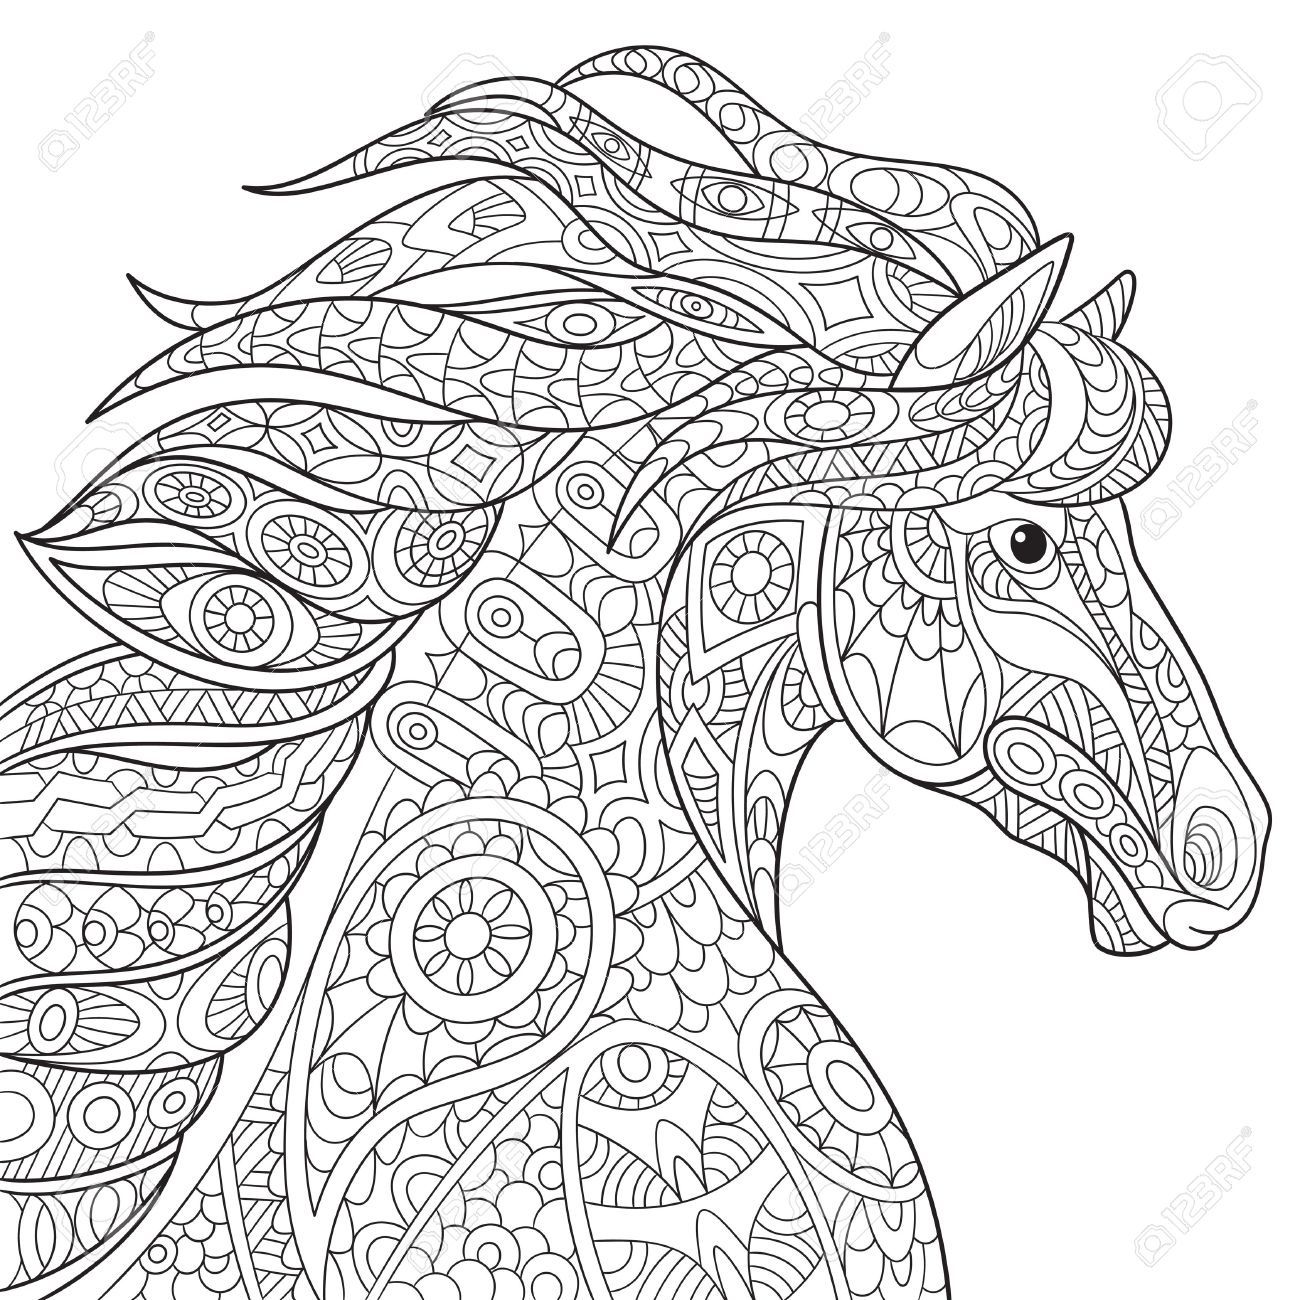 5 336 coloring page for cliparts stock vector and royalty